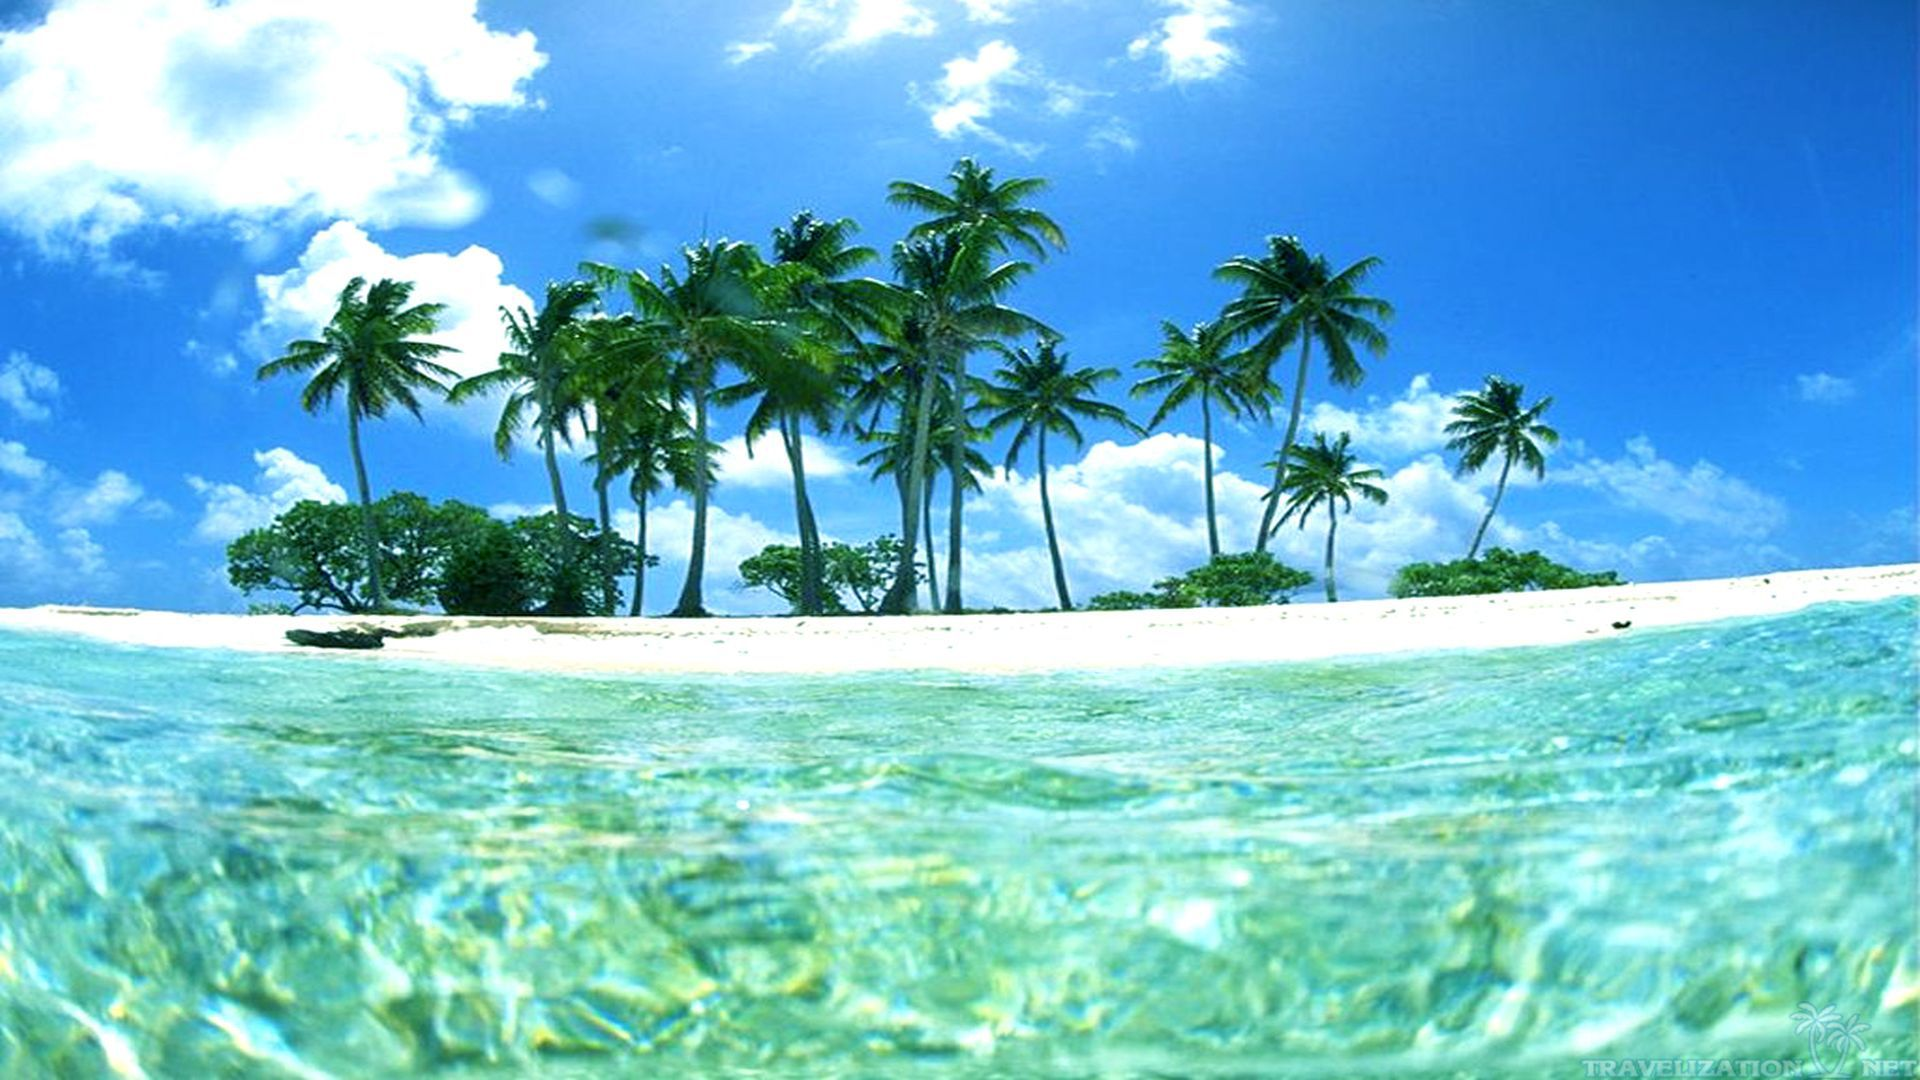 Beautiful tropical islands desktop wallpaper wallpapersafari for Beach wallpaper 1920x1080